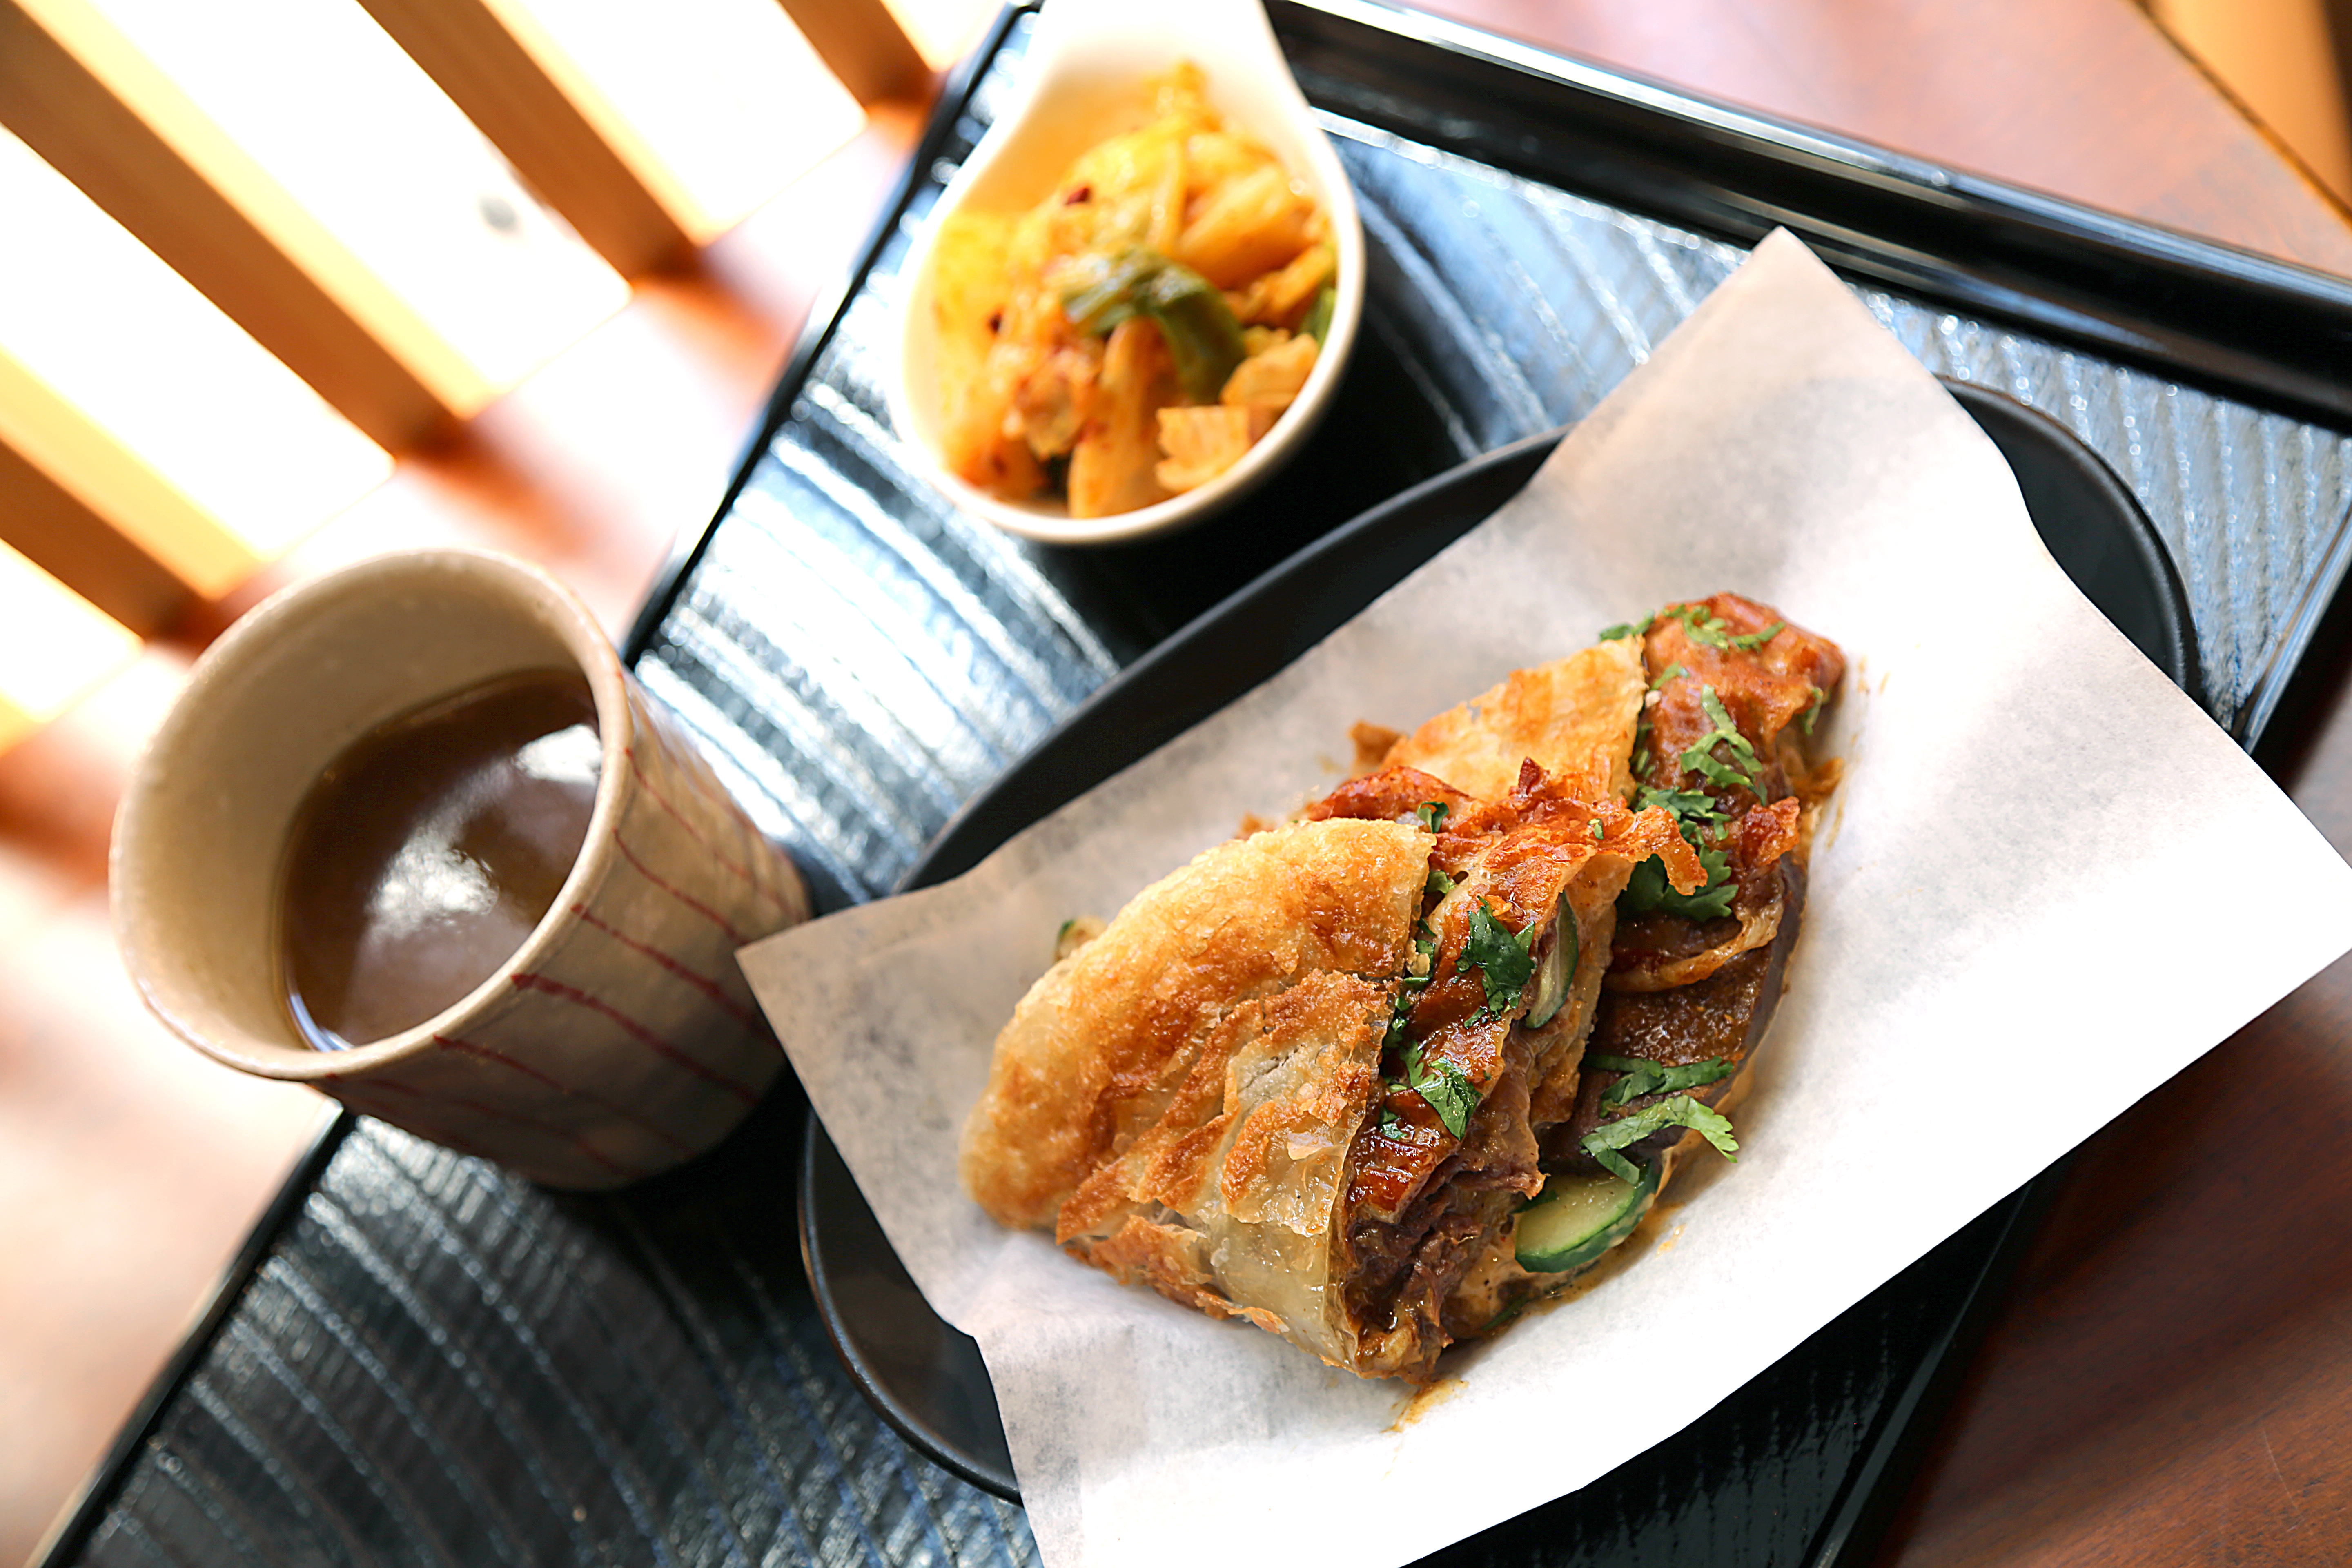 A crispy sandwich filled with meat rests on parchment paper in a plastic dining tray. Beside it, there is a dark beverage and a side of pickled vegetables.